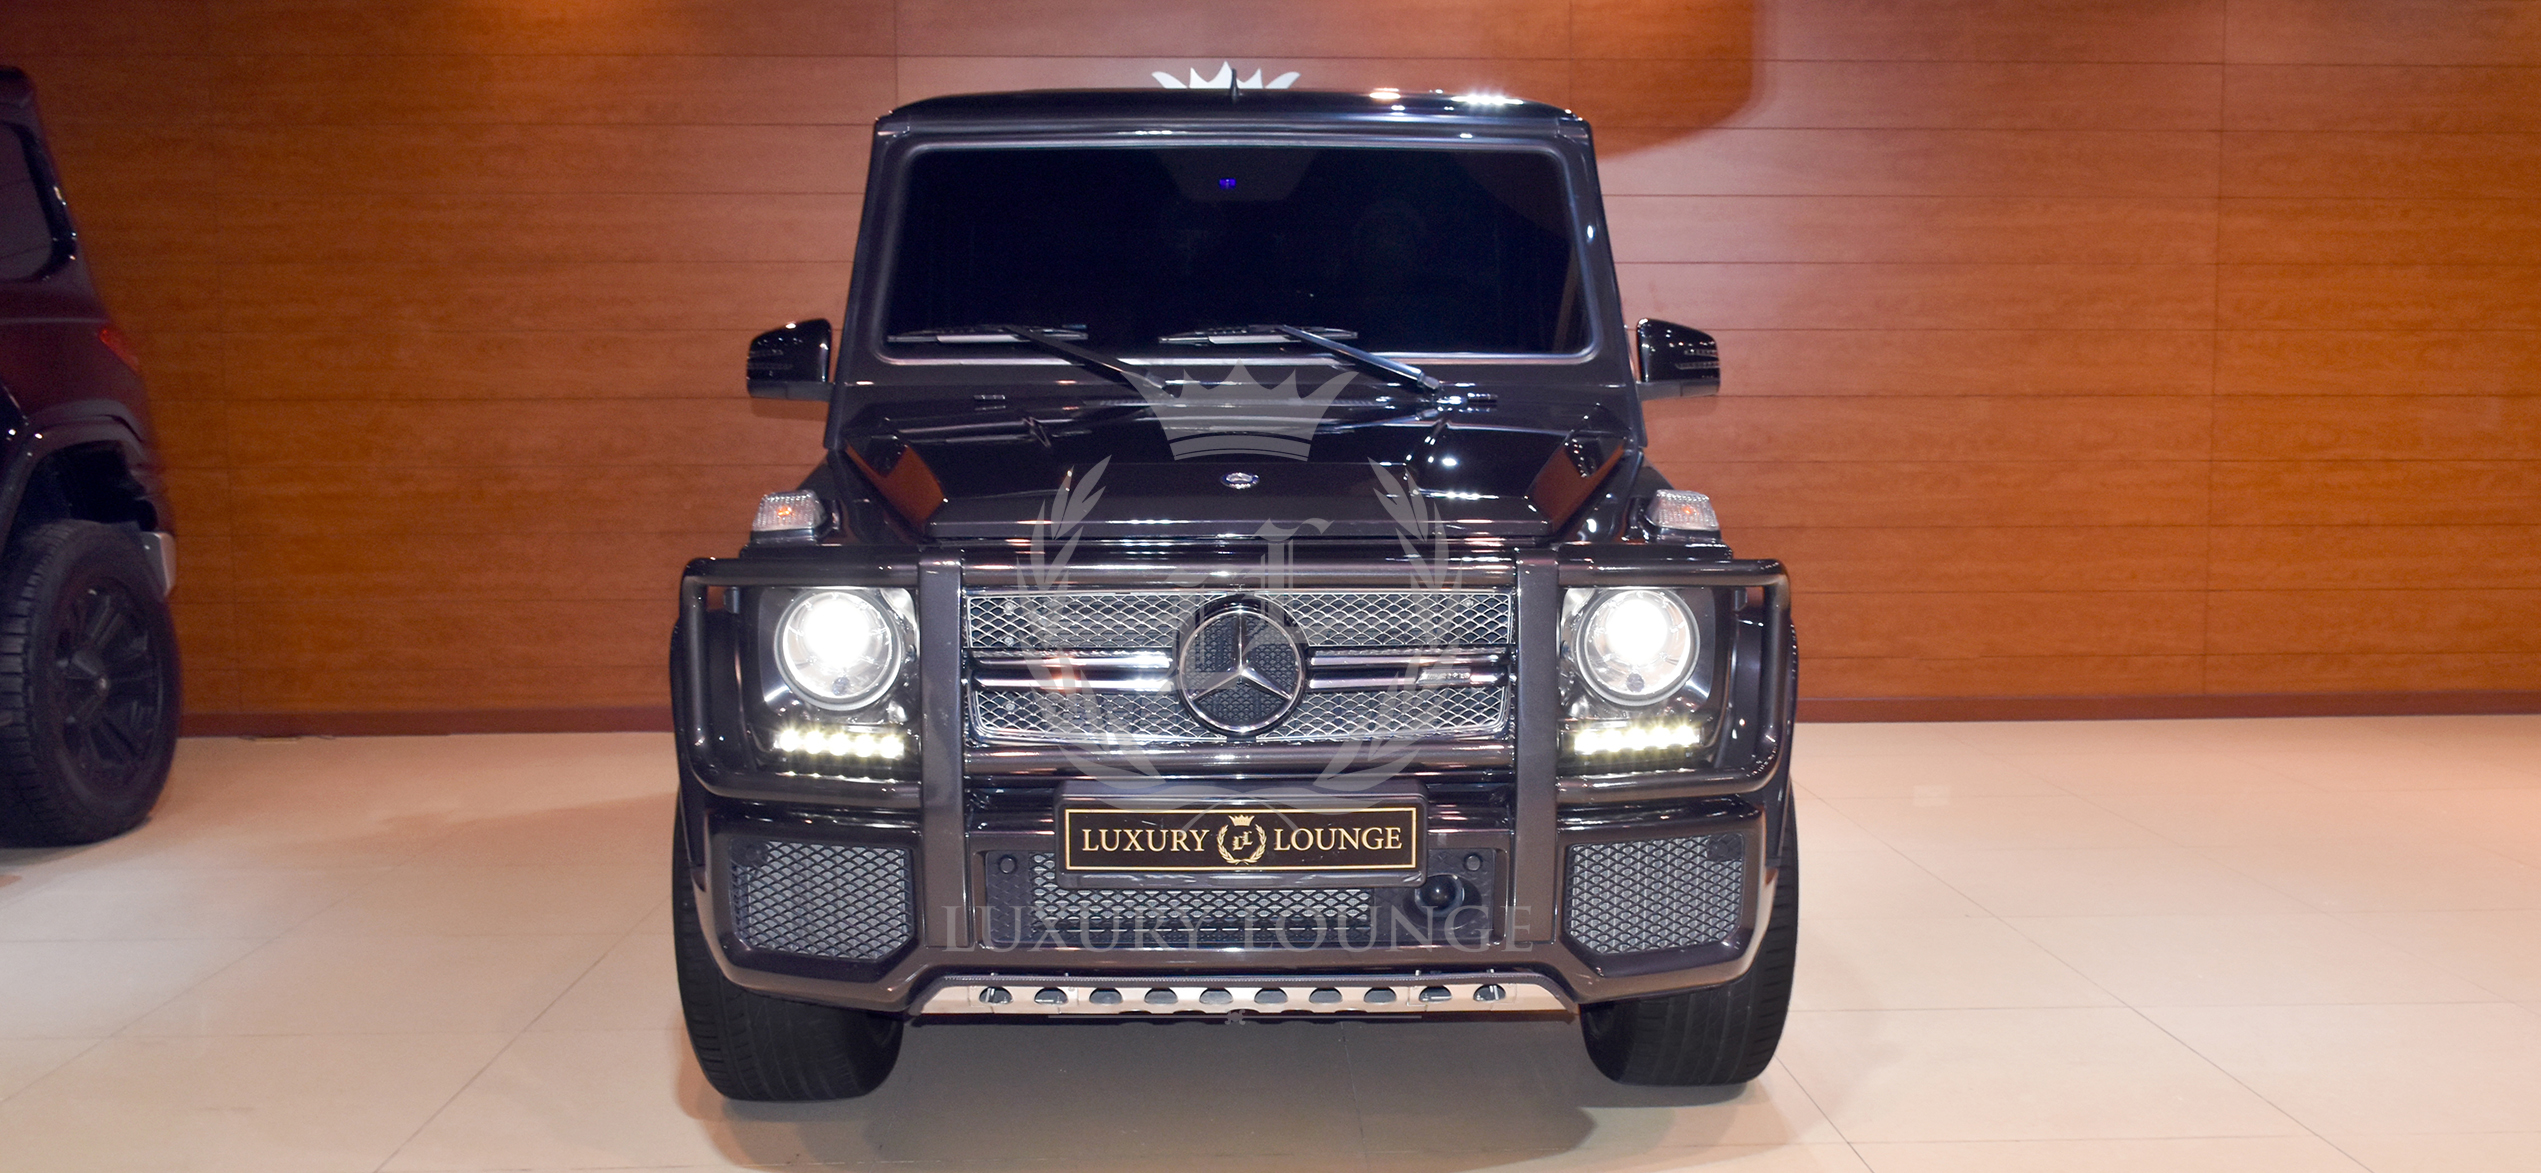 2013 Mercedes Benz G 65 Full Service History Gcc Specsno Paint No